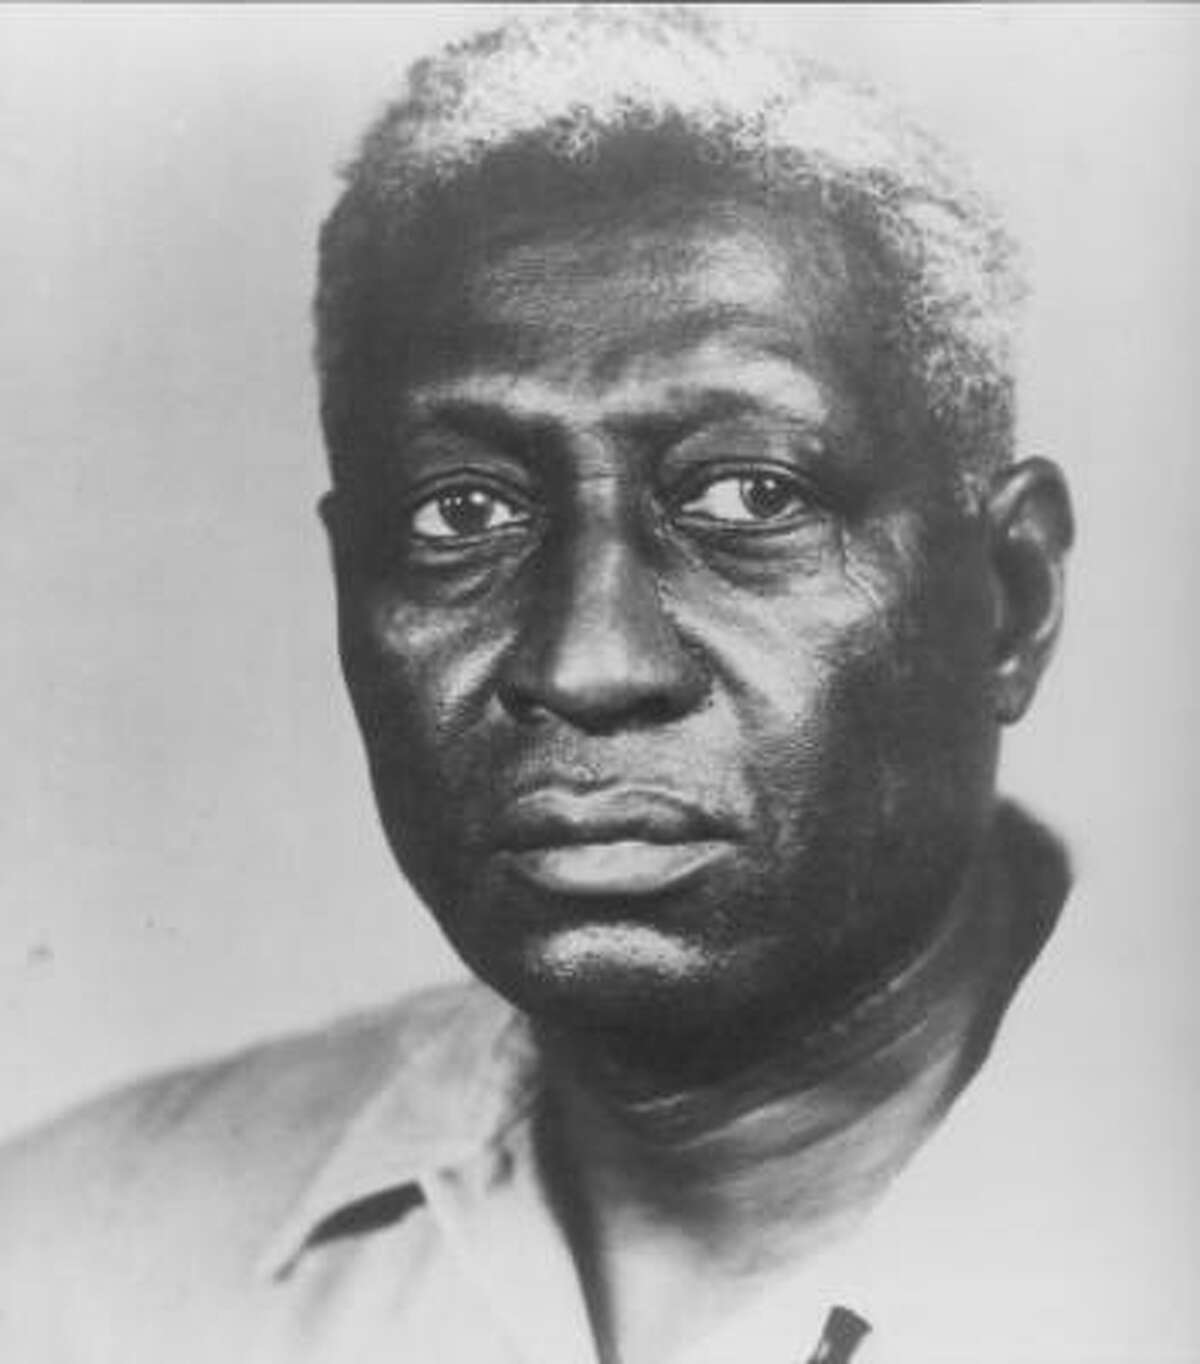 Among the most famous former residents of the Louisiana State Penitentiary -- often referred to as Angola -- was folk music legend Leadbelly. A small prison museum references his time there.